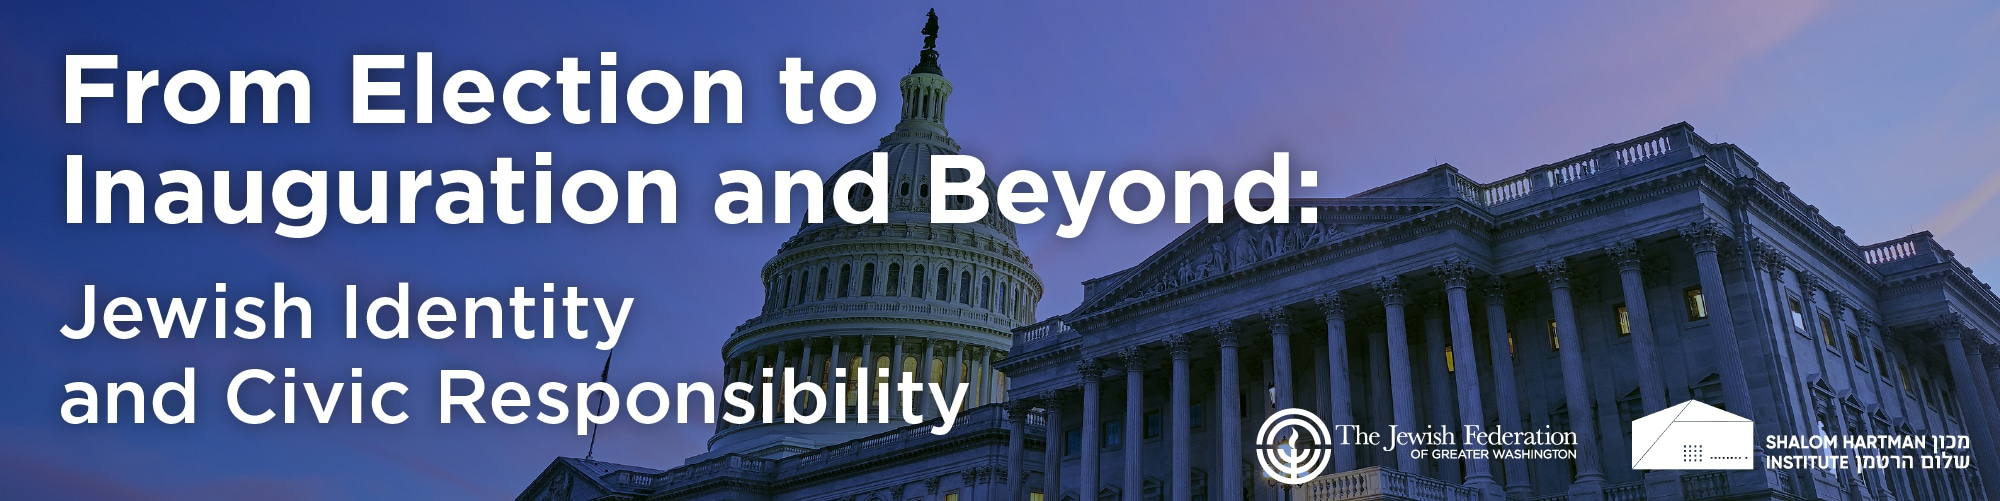 From Election and Beyond: Jewish Identity and Civic Responsibility